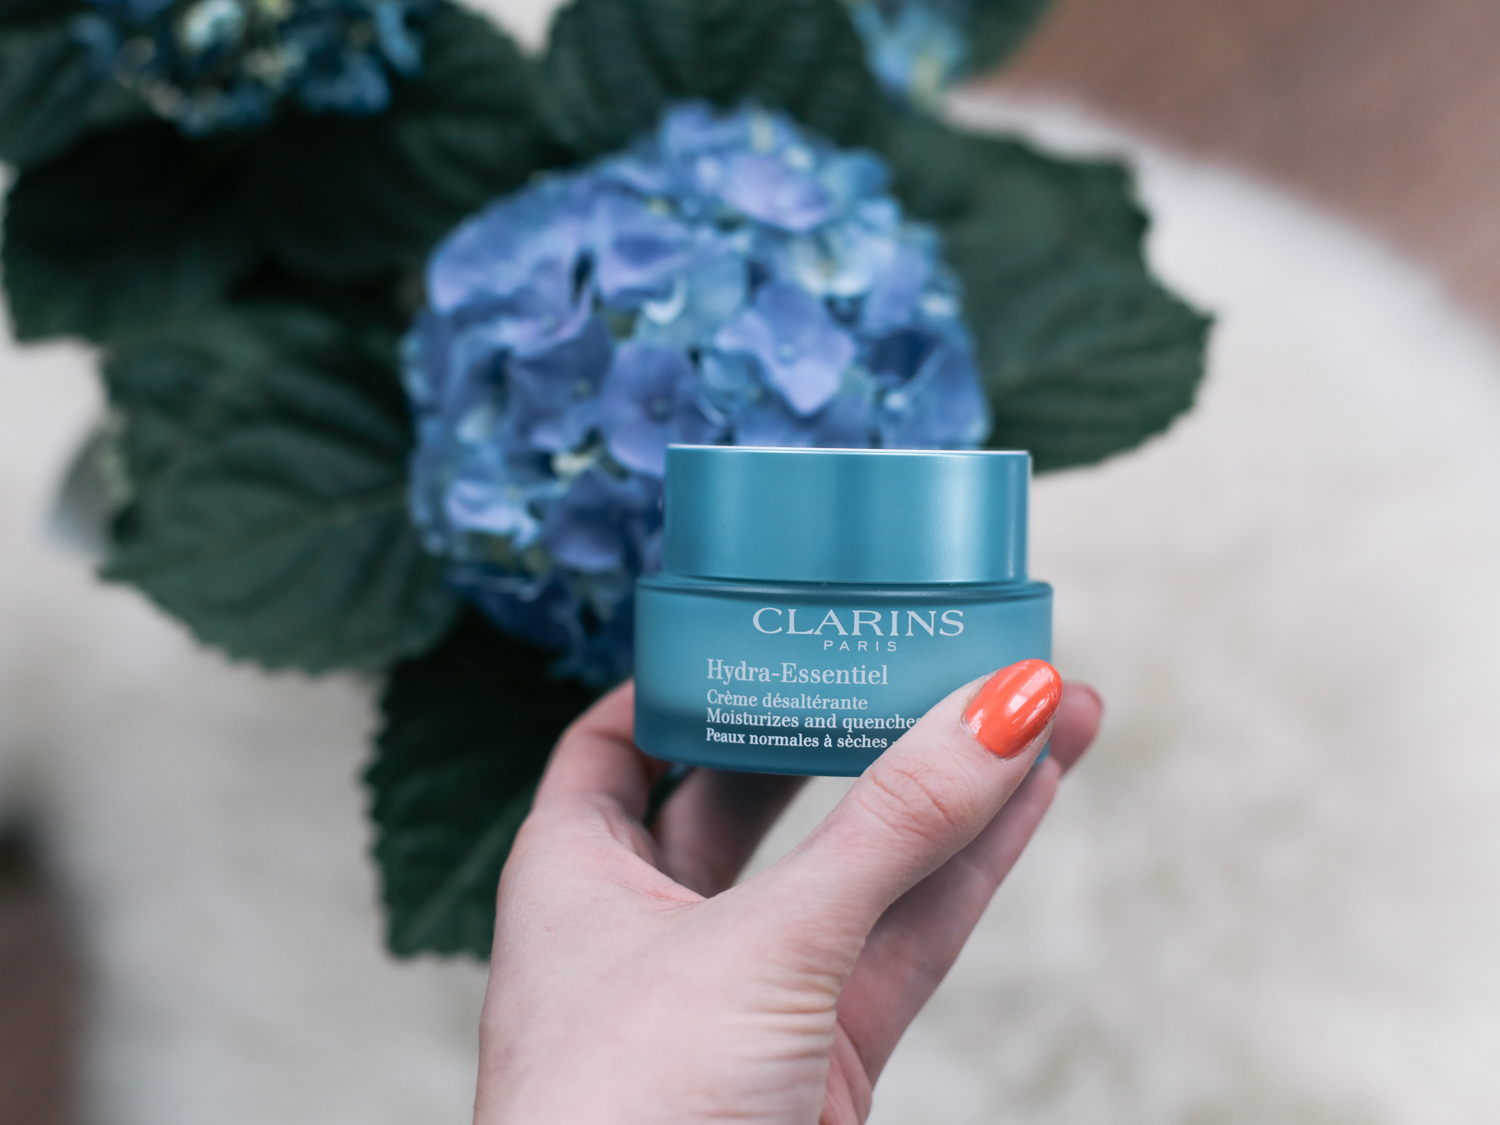 clarins spring 2017 products (1 of 8)